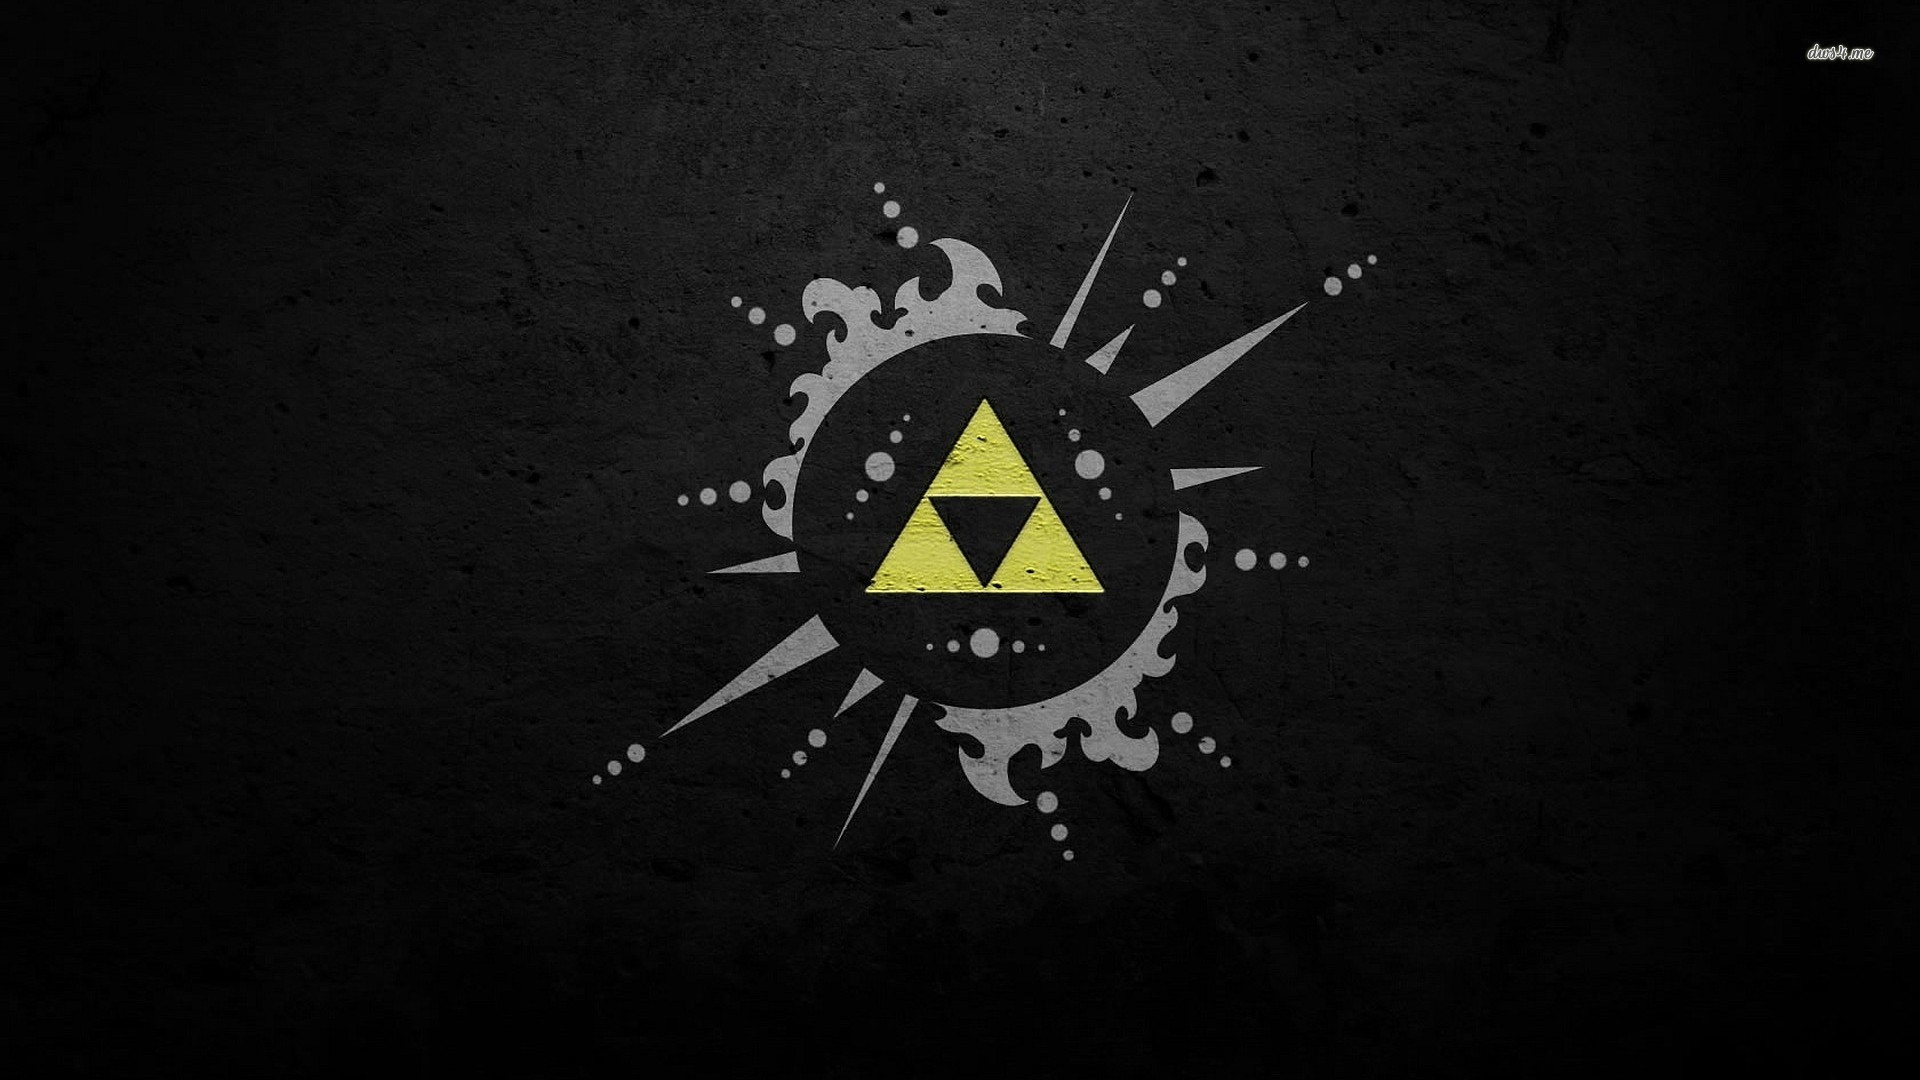 Wallpaper zelda hd gratuit t l charger sur ngn mag for Fond ecran gaming